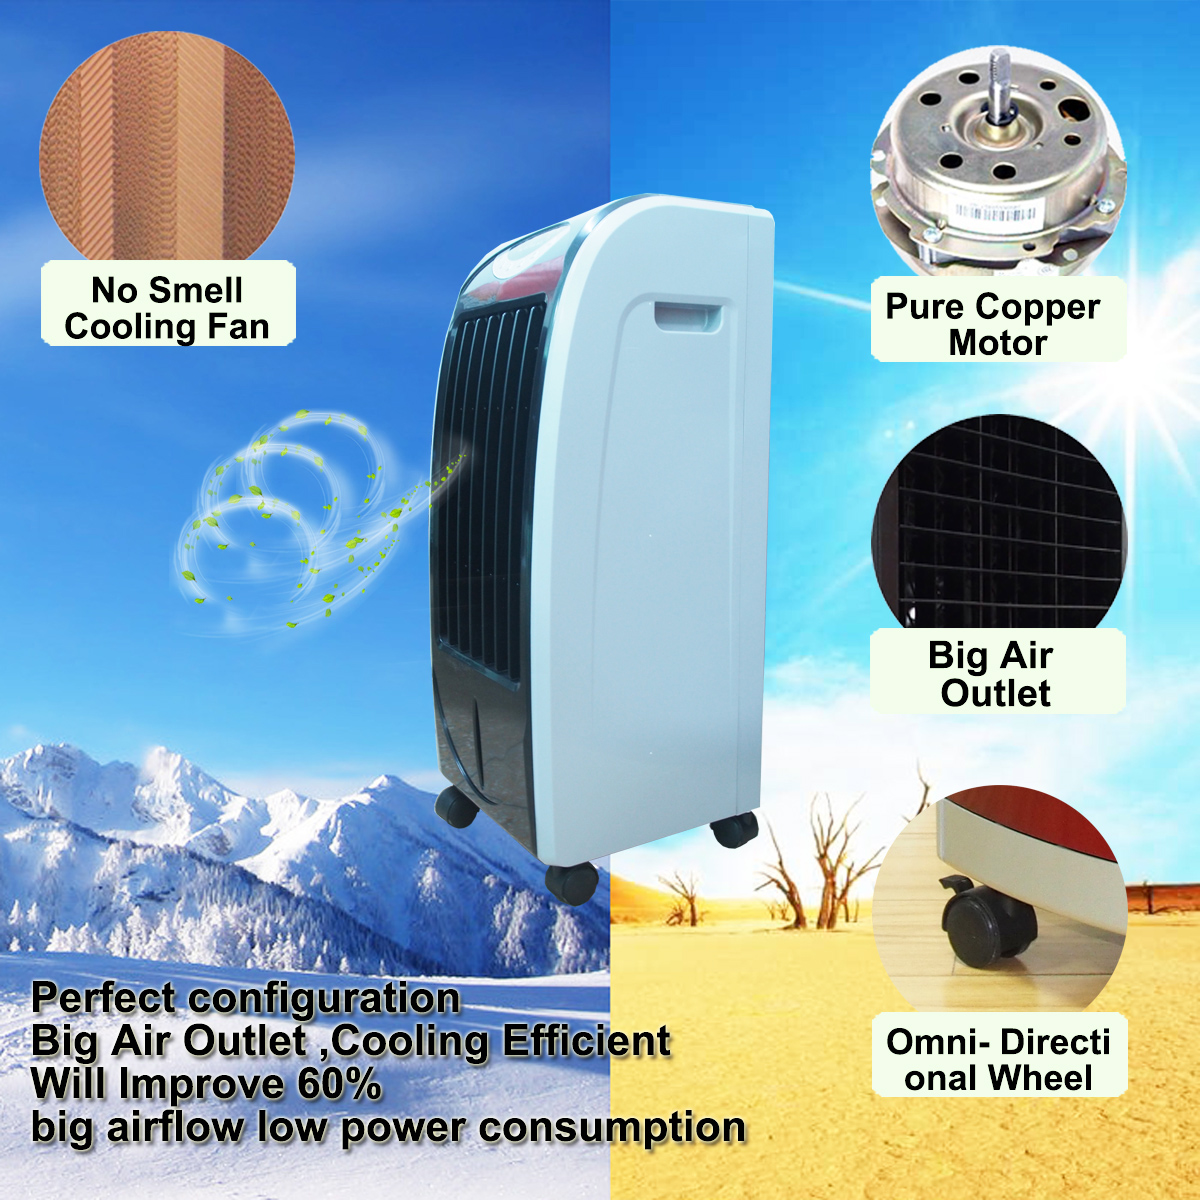 Charge Air Cooler Ice Box : Portable air cooler with ice box water